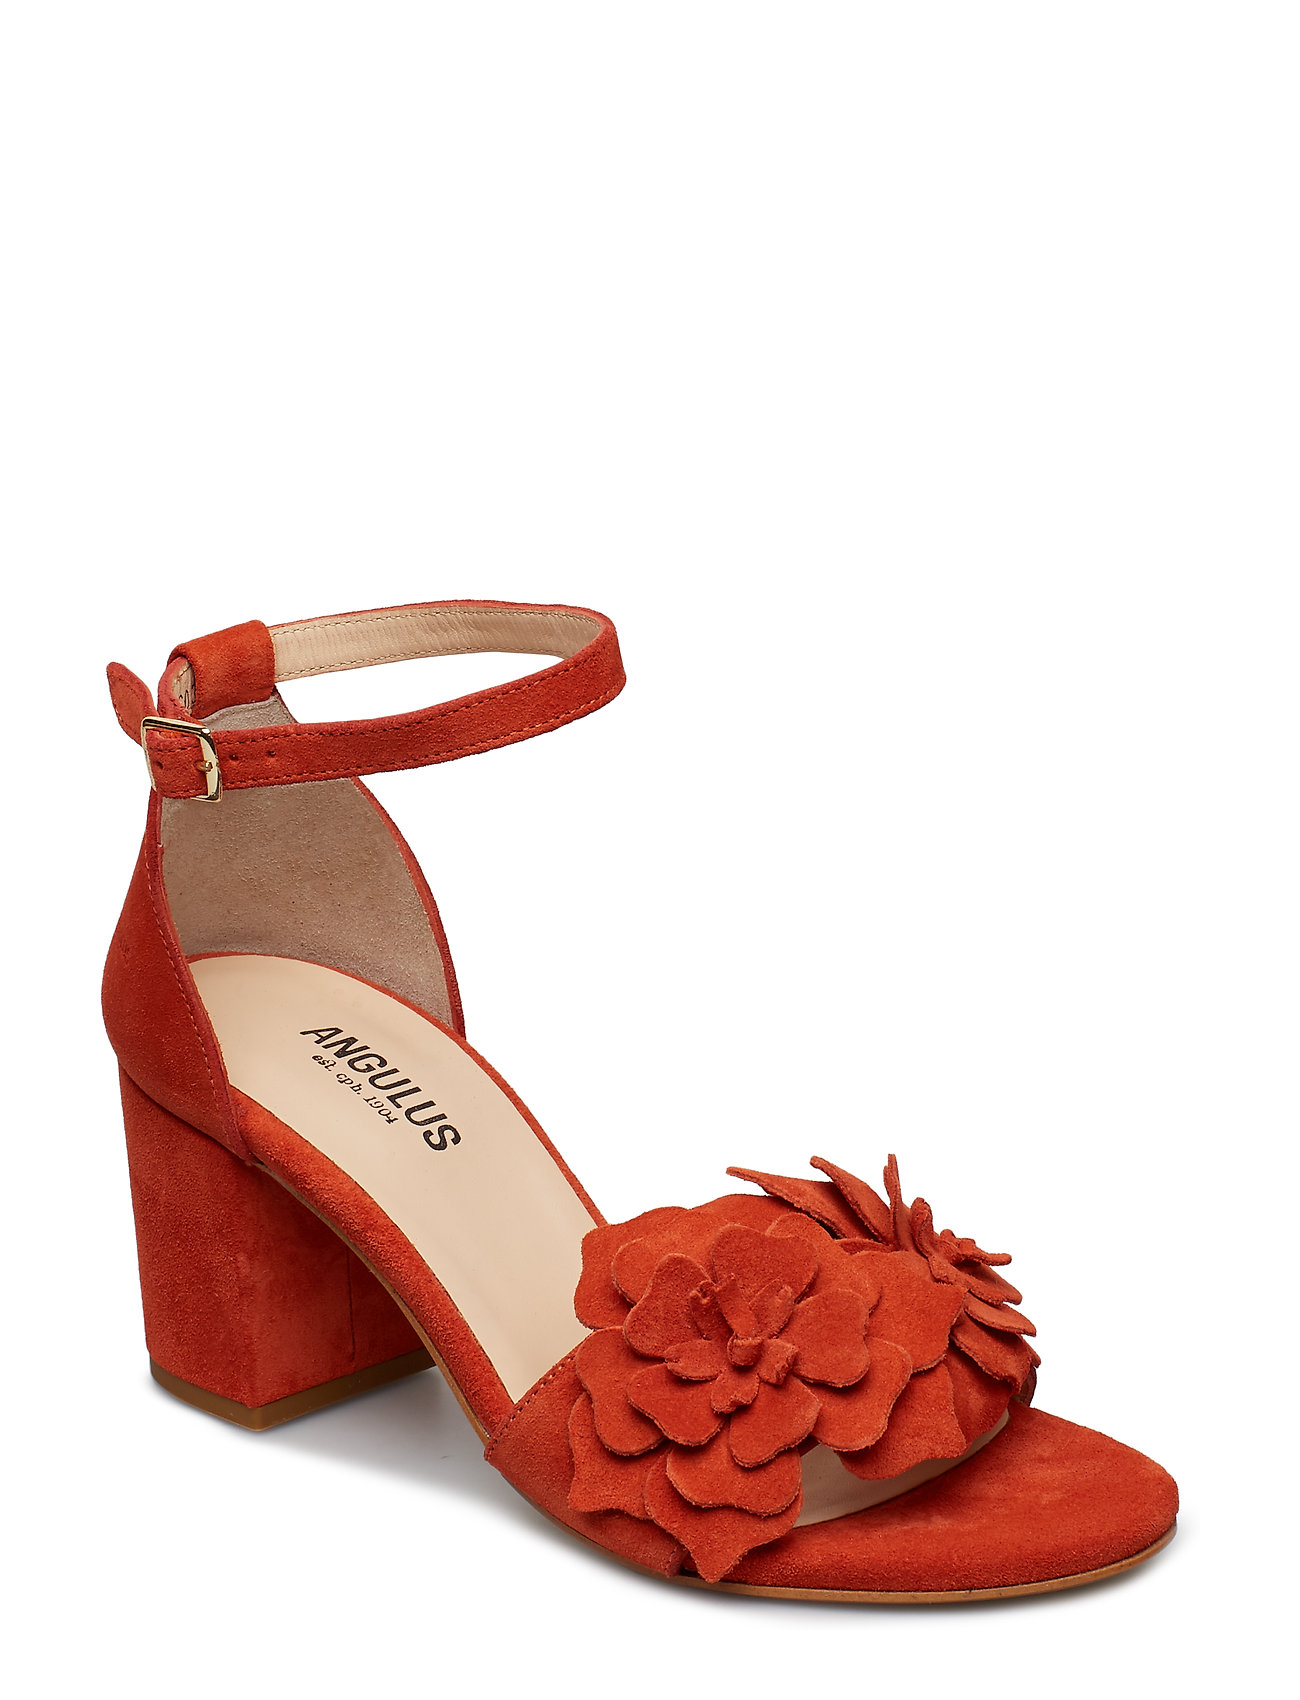 Image of Sandals - Block Heels - Open Toe Sandal Med Hæl Rød ANGULUS (3346155409)